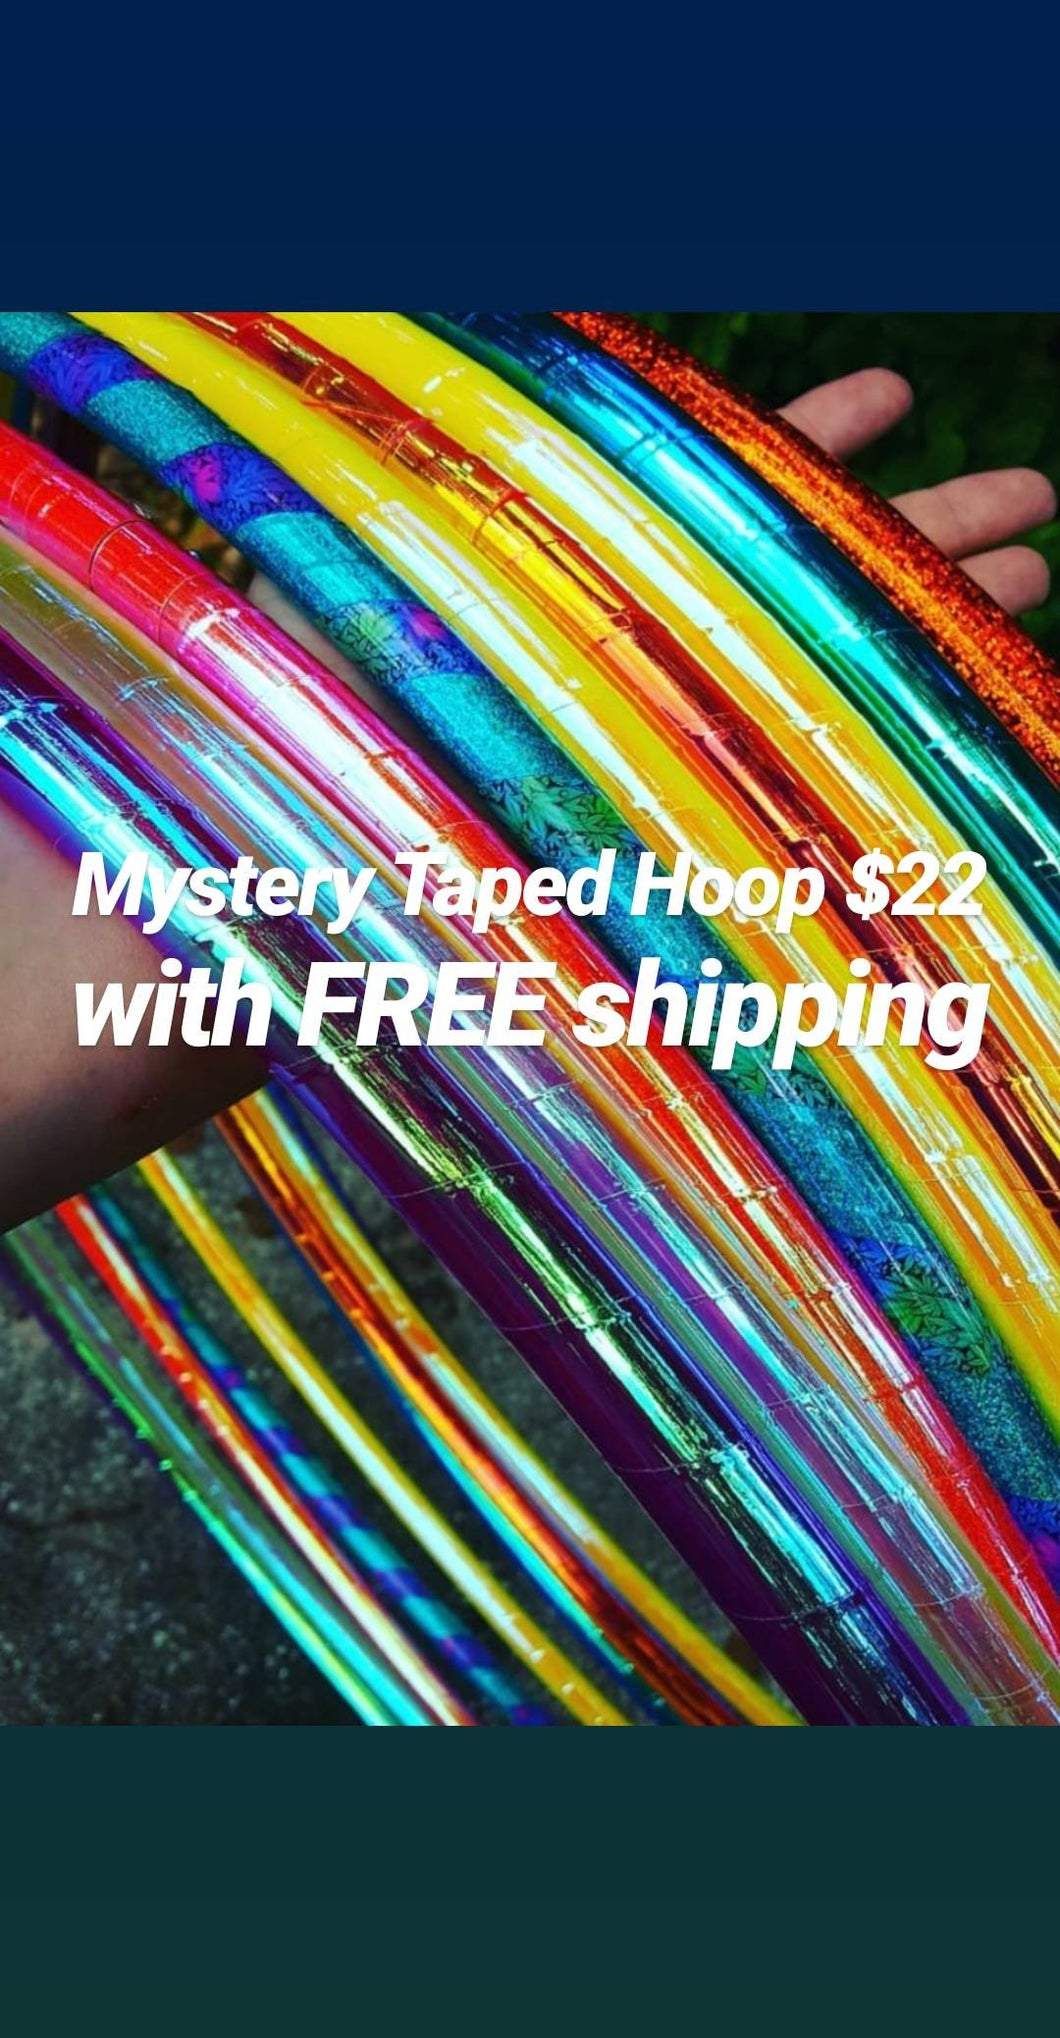 Mystery Taped Hoop! Cannot be used with any discounts!!